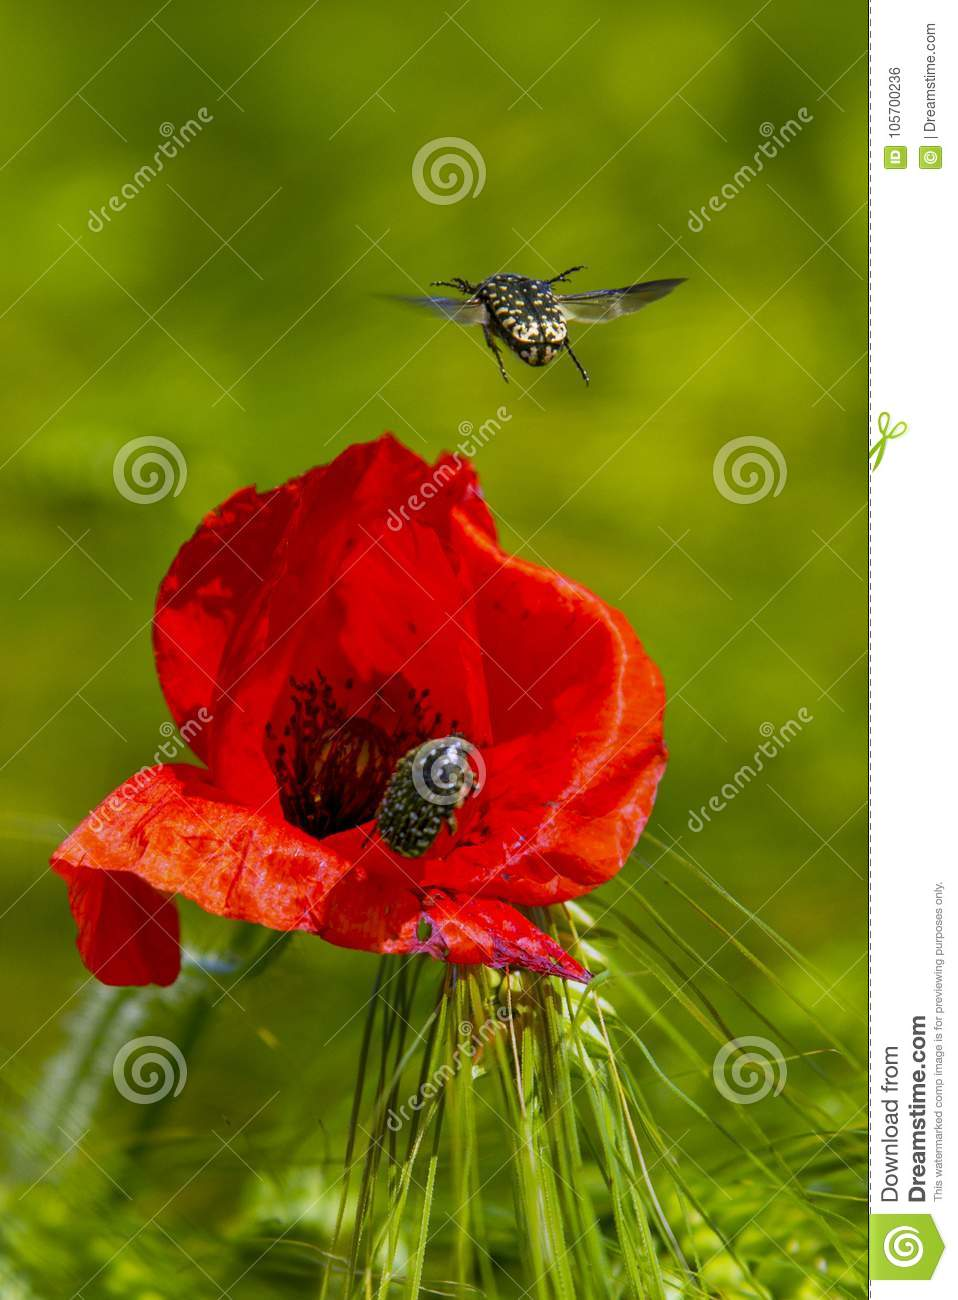 A Small Insect Flying Over A Poppy Flower Stock Photo Image Of